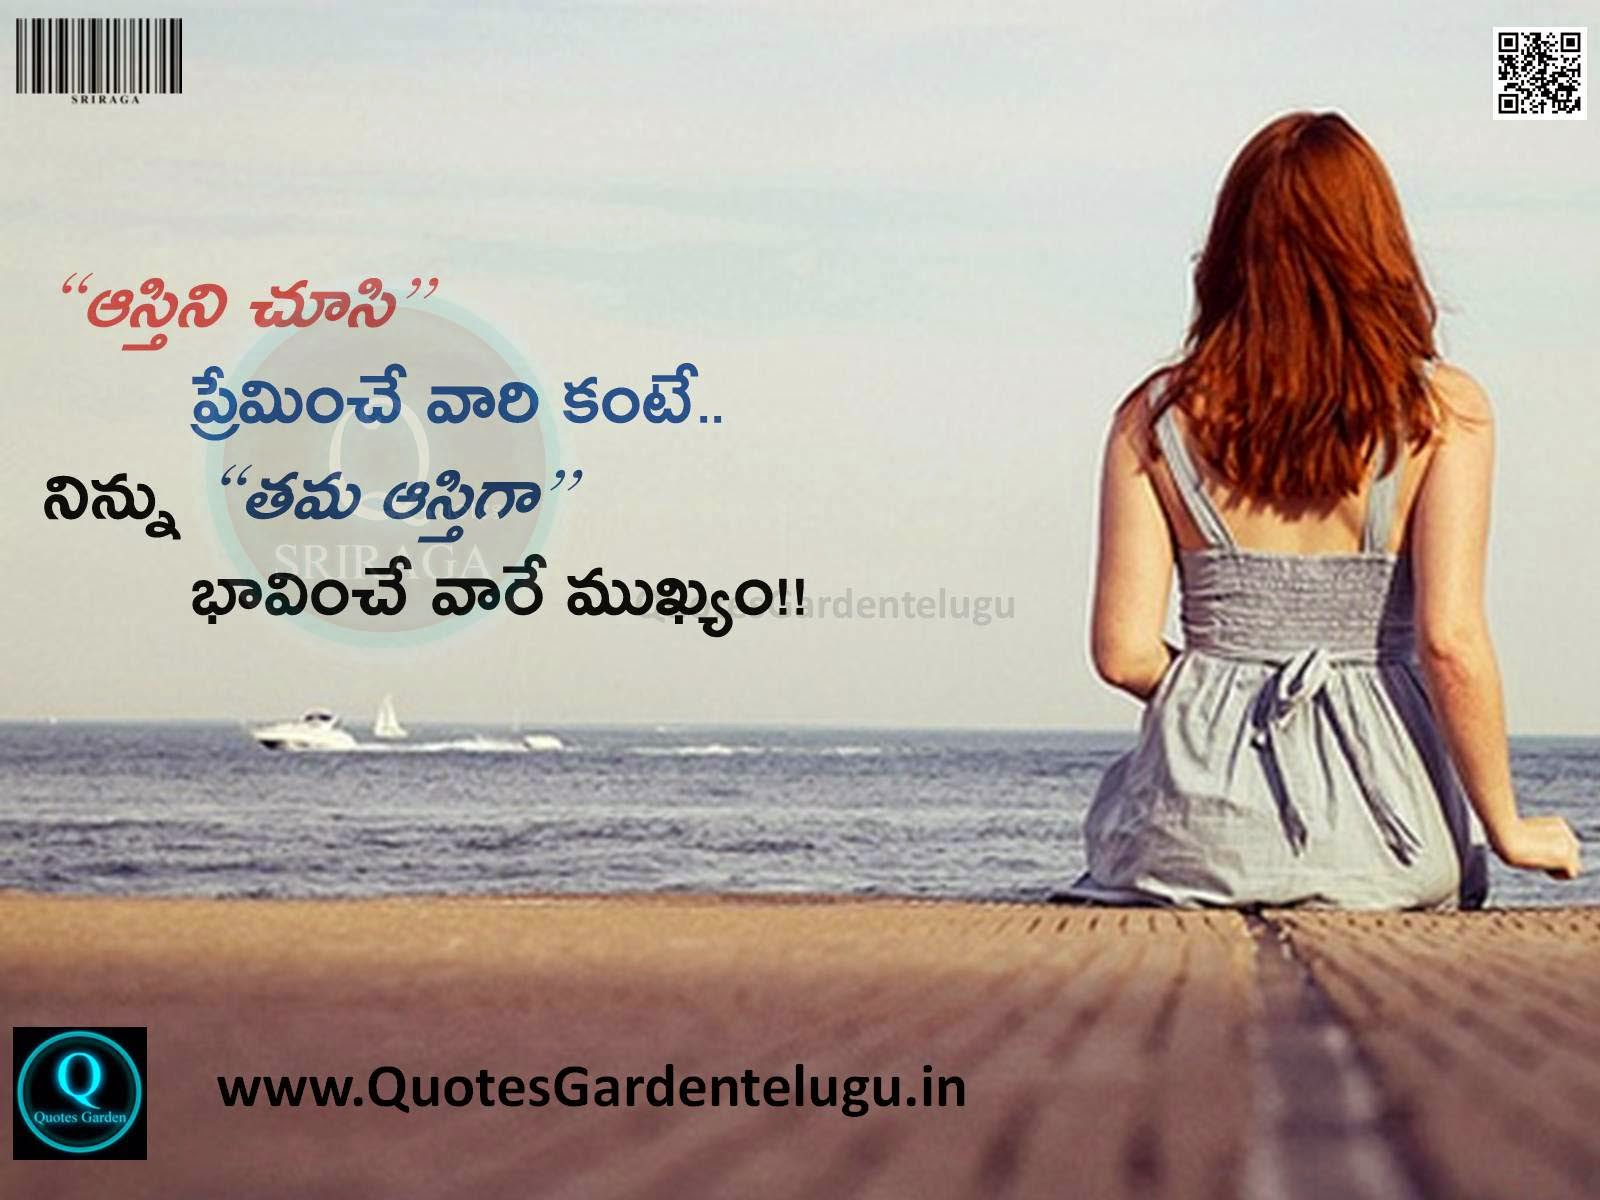 Water Quotes Ravikumar Ravikumar9063870 On Pinterest